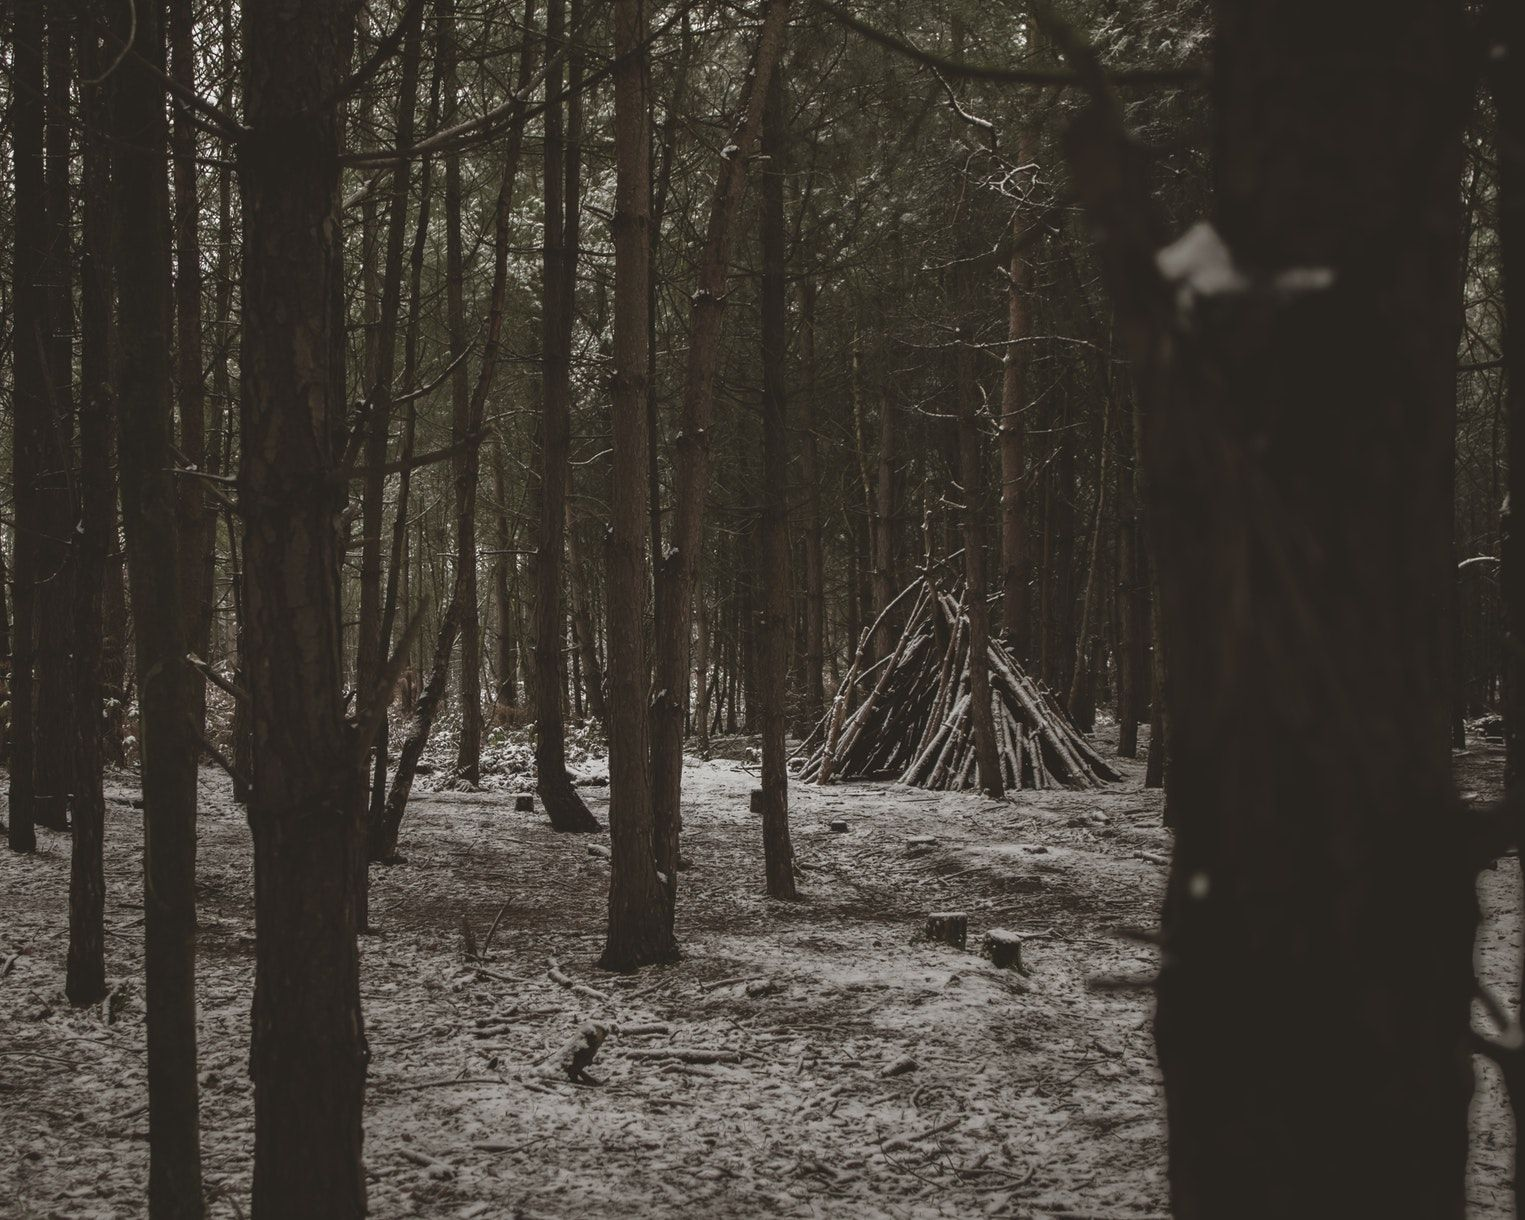 Pin By Willow Wilson On Scandinavian Horror Aesthetic Photo Bloodborne Game Nature